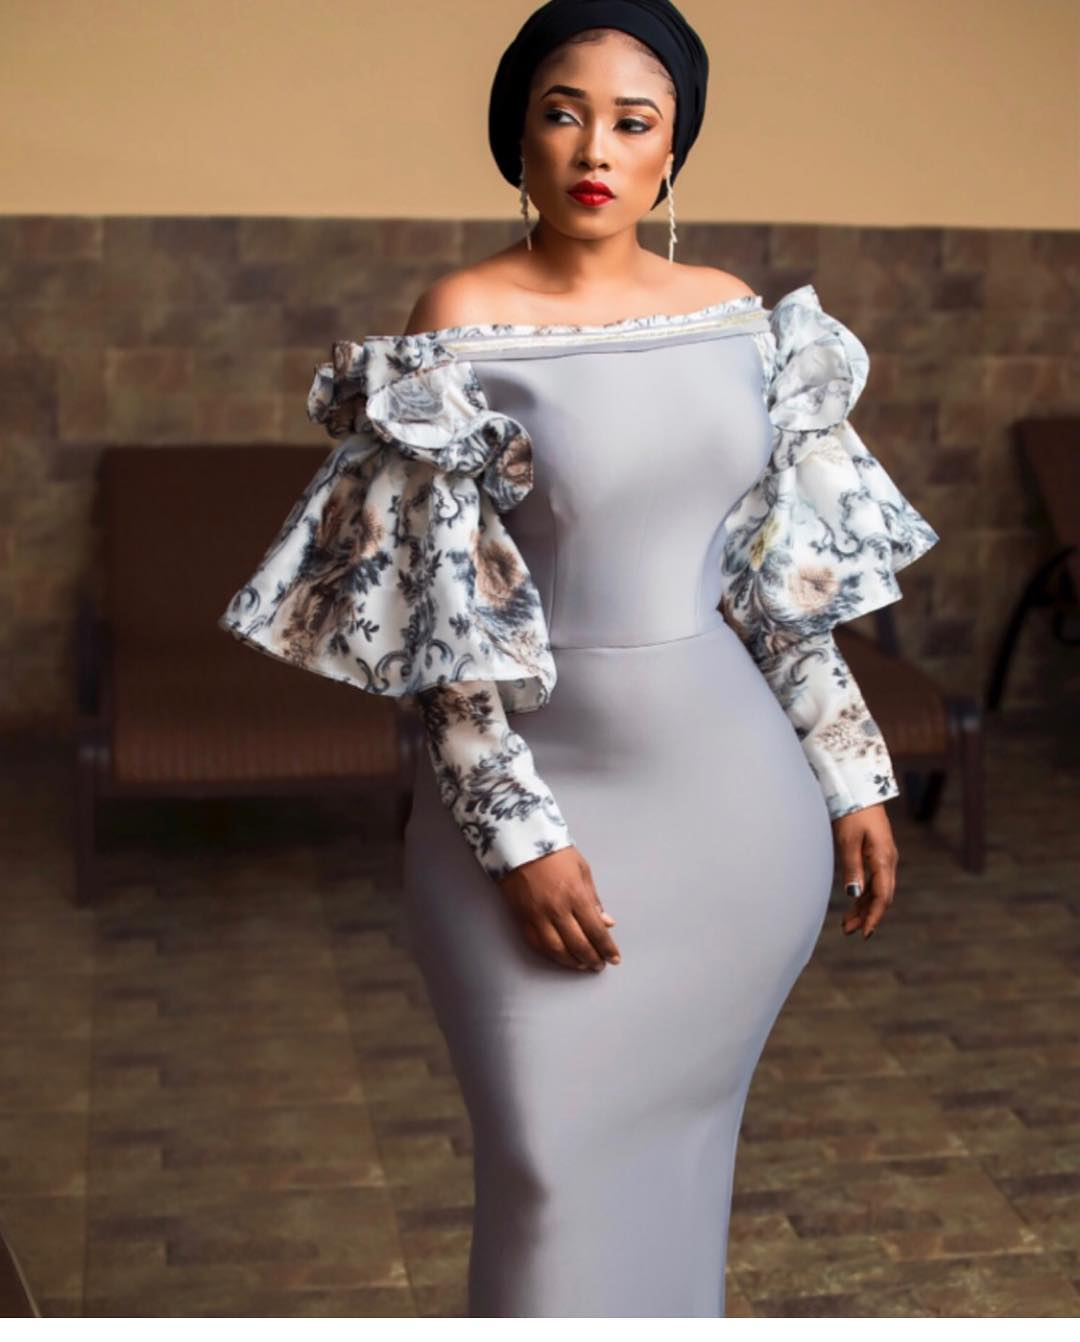 12 Nigerian Made Dresses That Are Banging Hawt!!